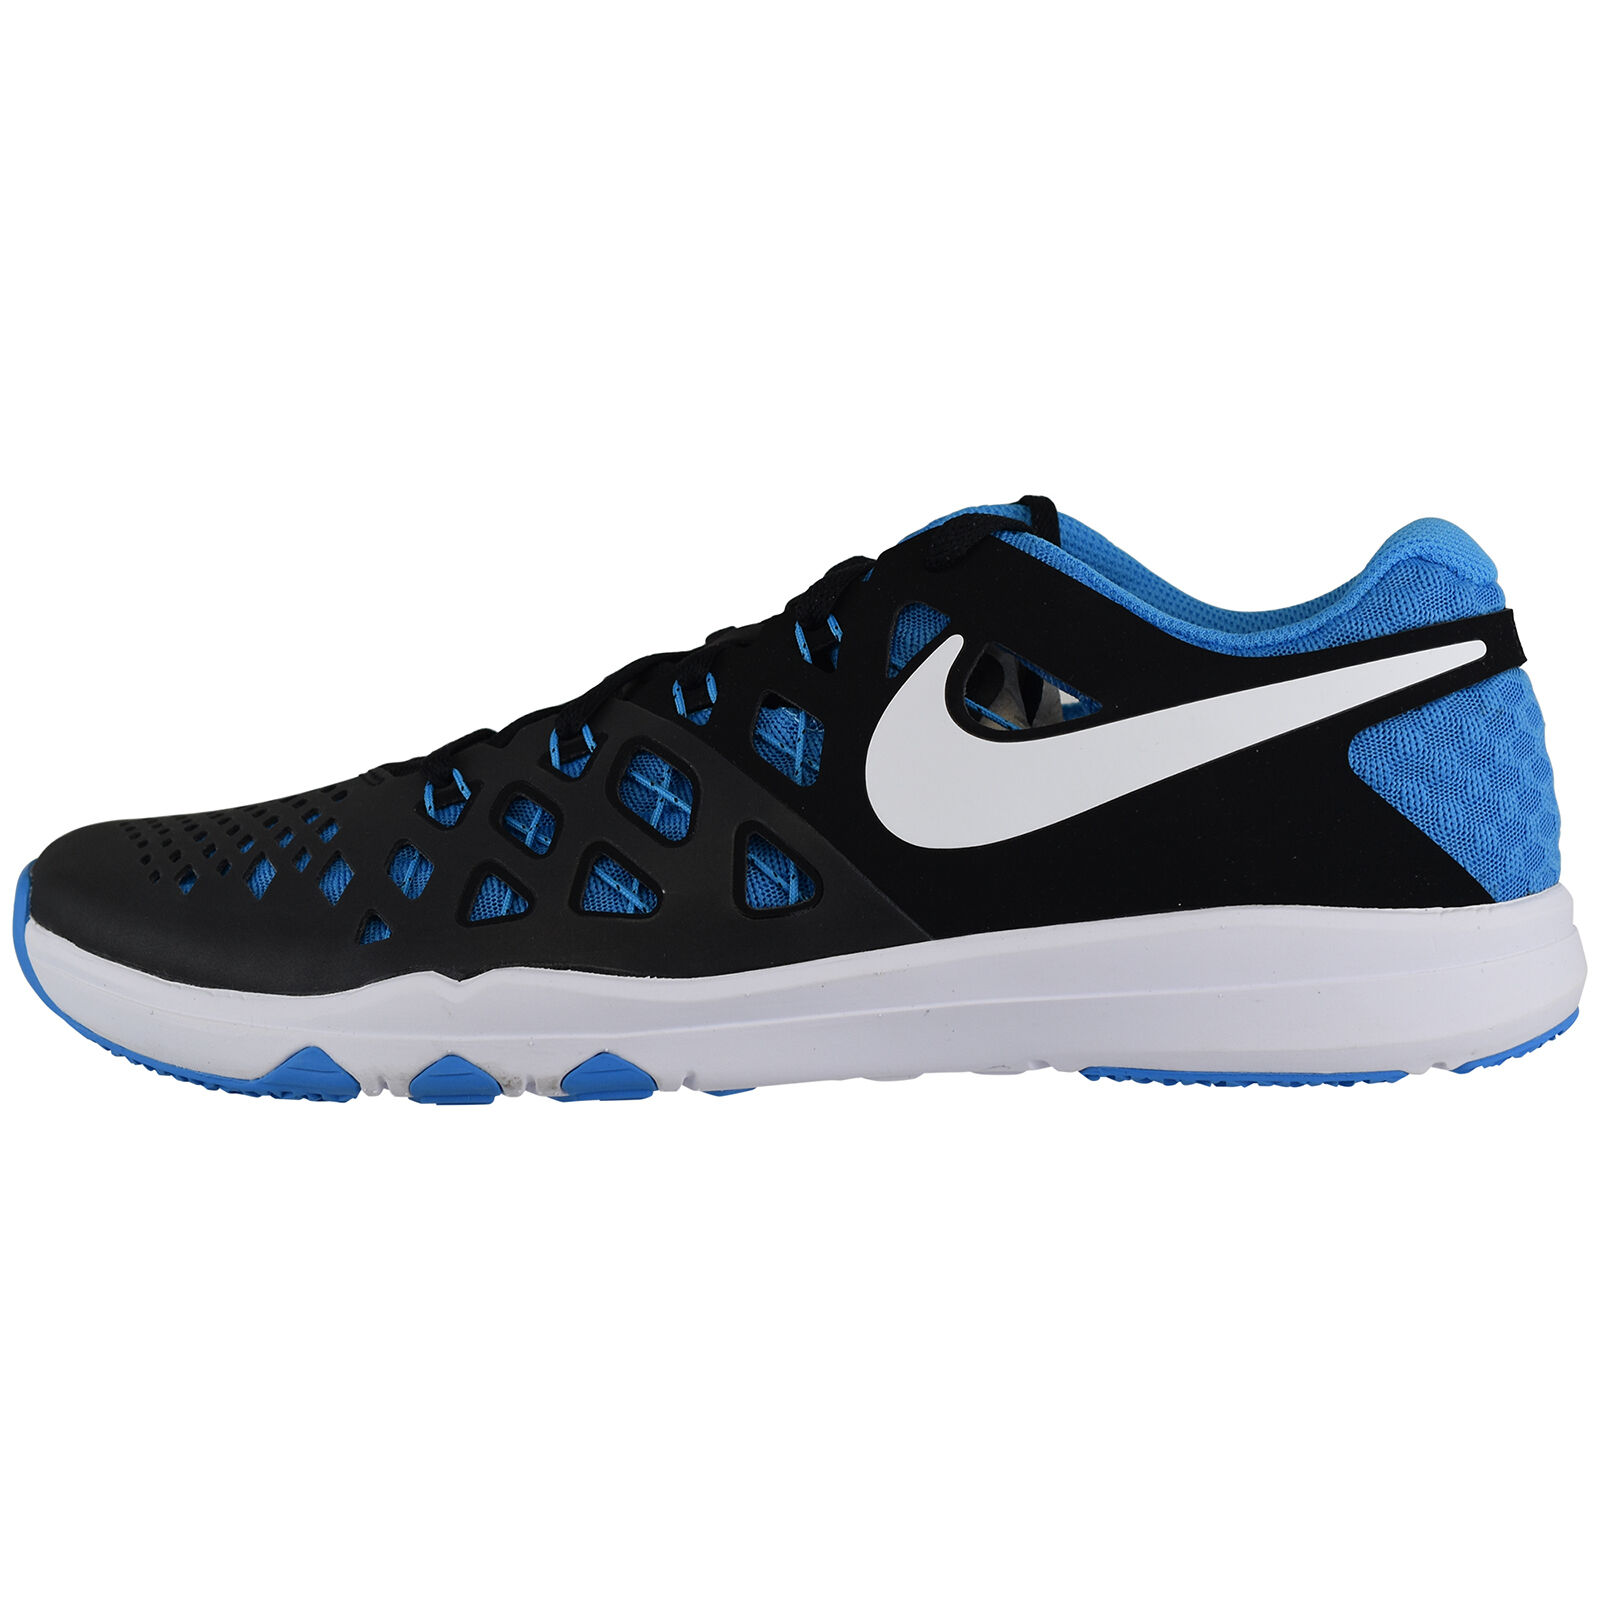 d8f9925ef3c6 Nike Train Speed Speed Speed 4 843937-002 Jogging Running Leisure Running  shoes Trainers aa6ae0